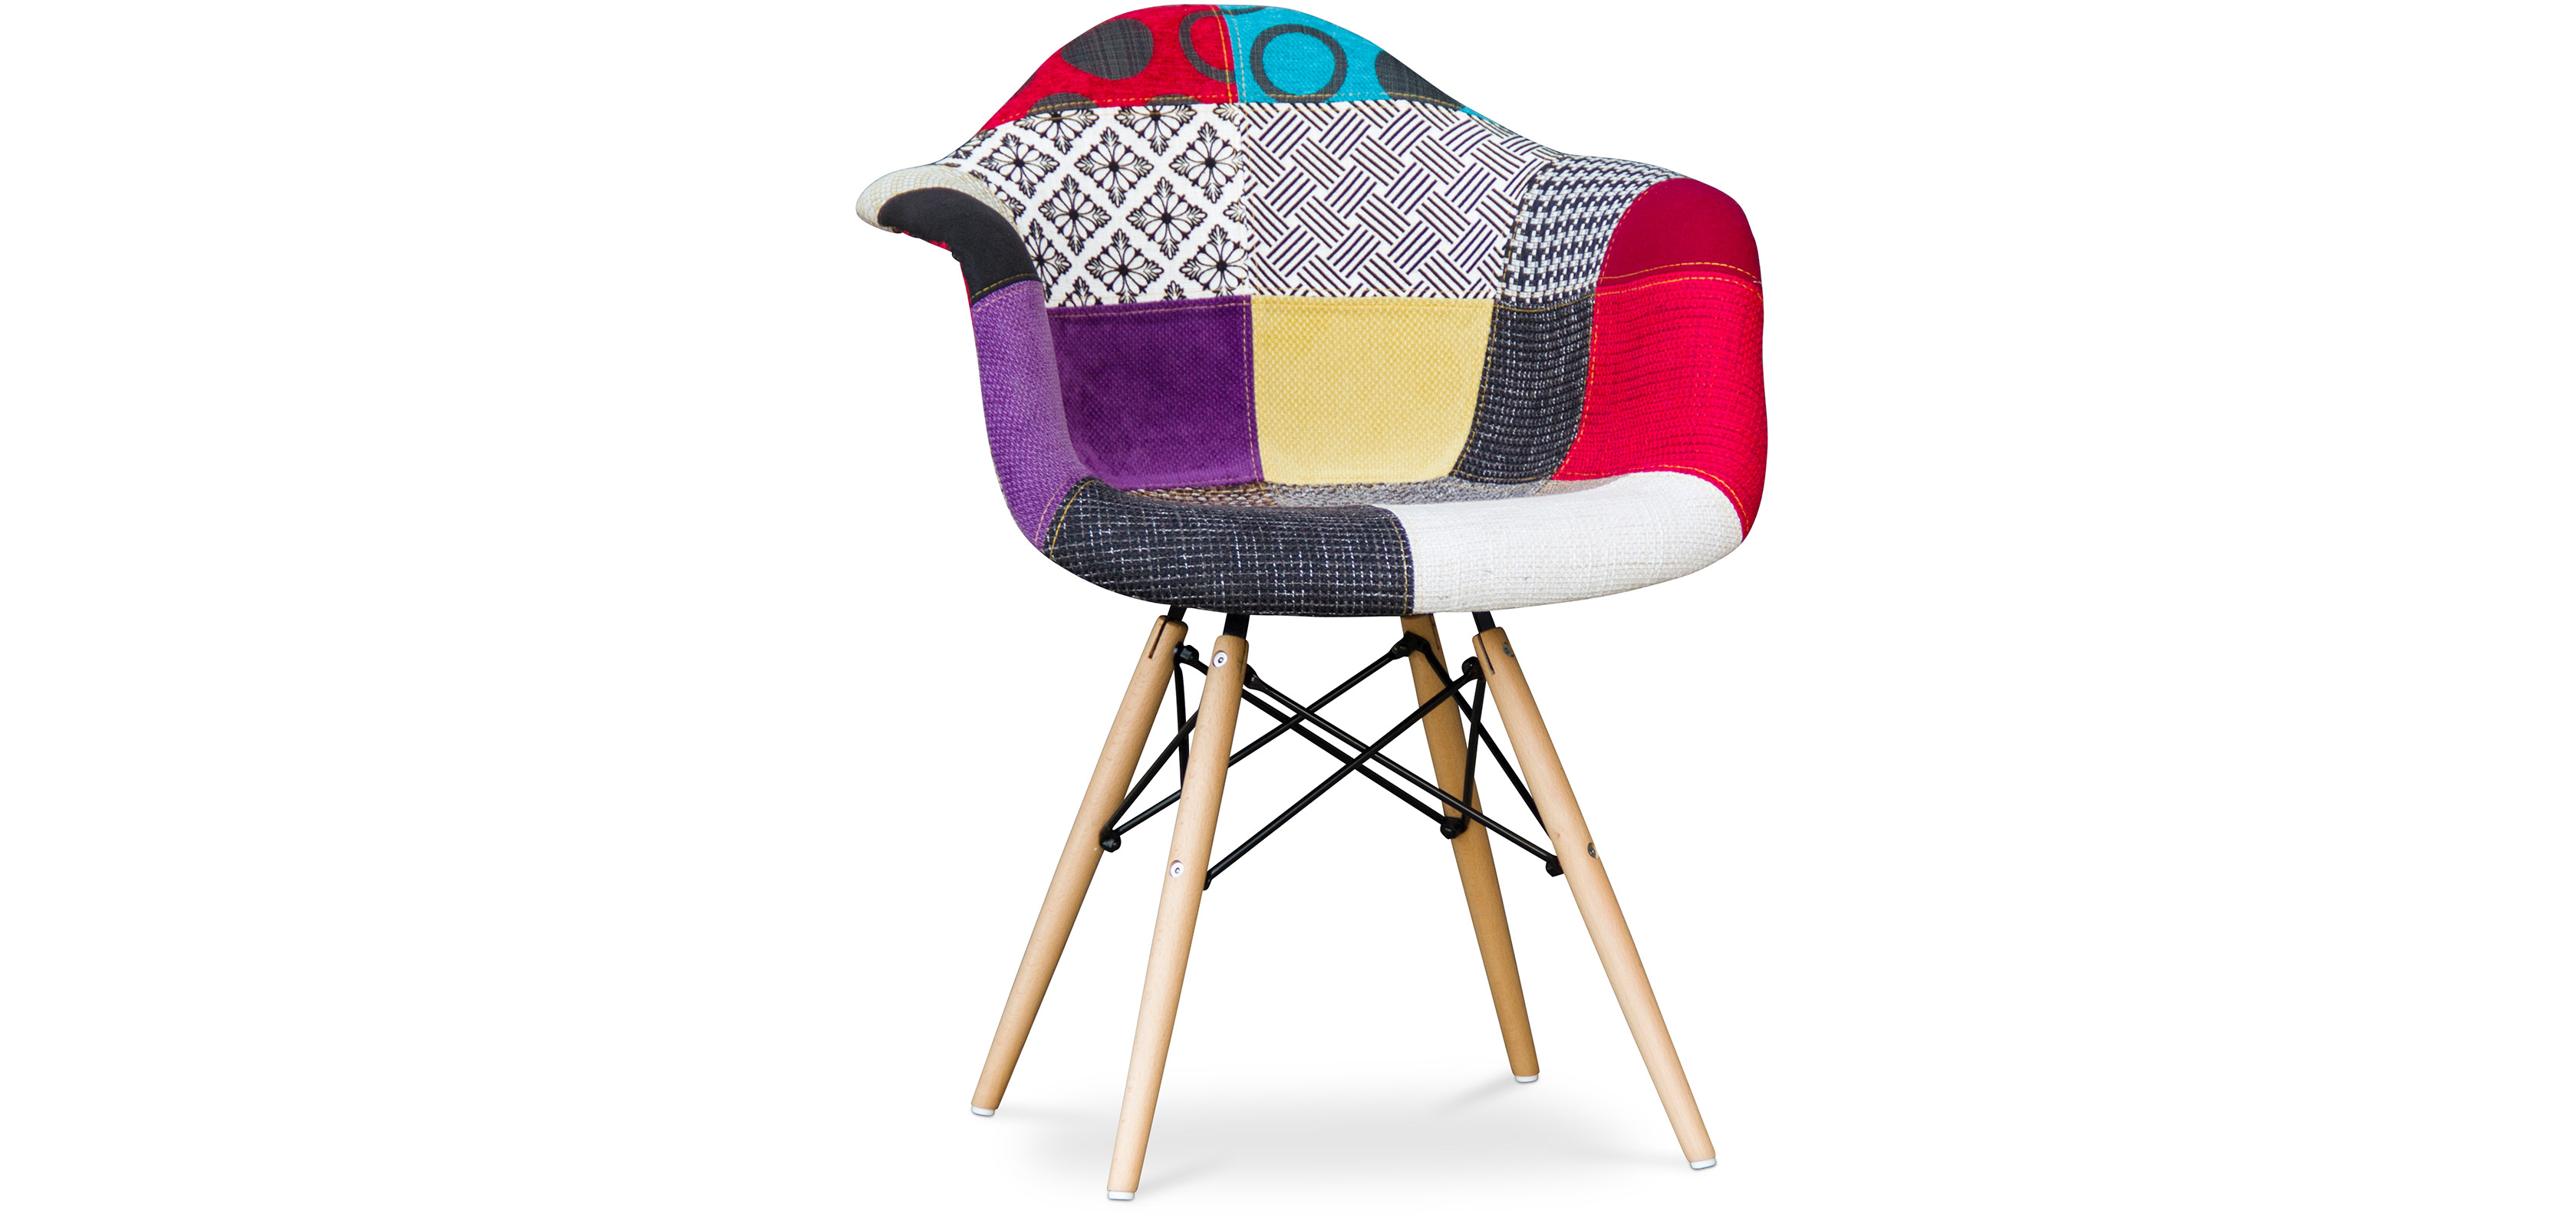 Chaise Design Patchwork Chaise Patchwork Eames Daw Chair Special Patchwork Upholstery